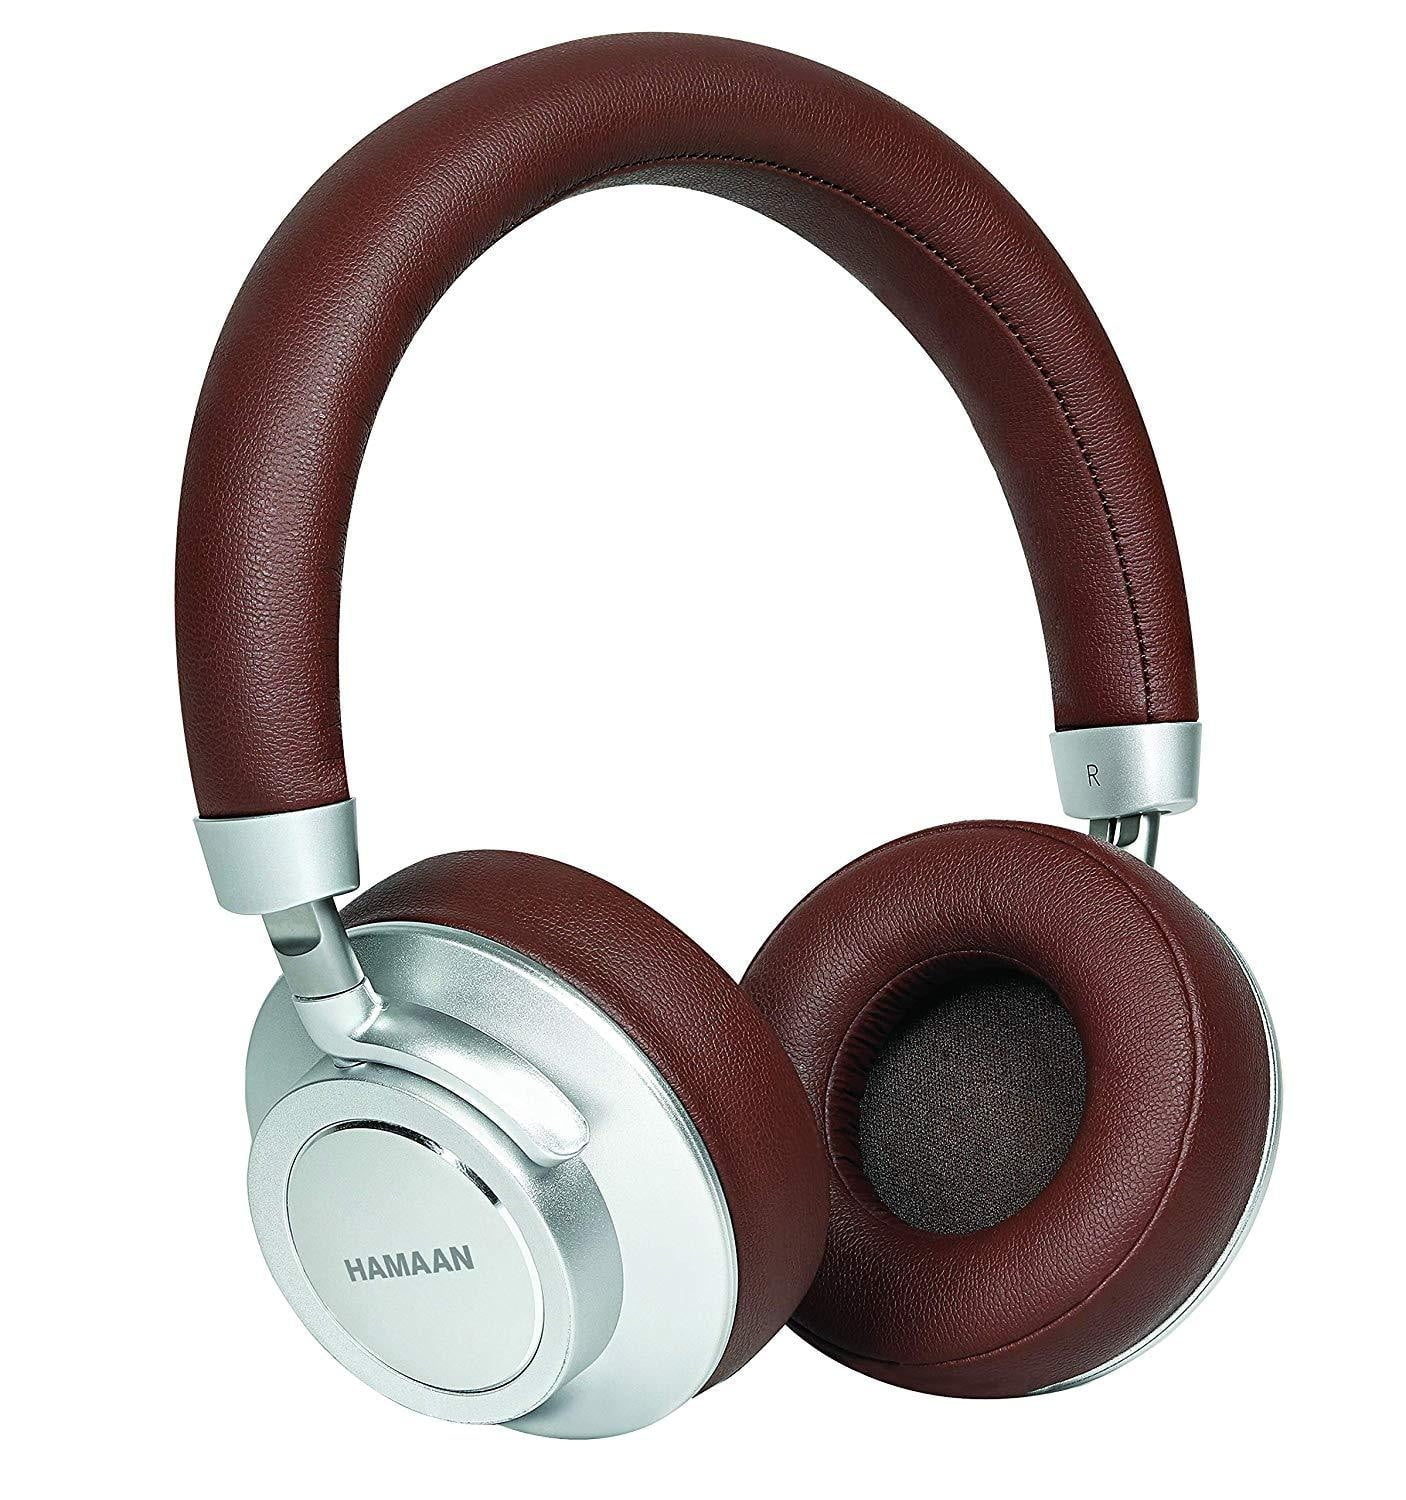 Hamaan H-30 Brown Super Bass Wireless Bluetooth On-Ear Headphones - Buythevalue.in